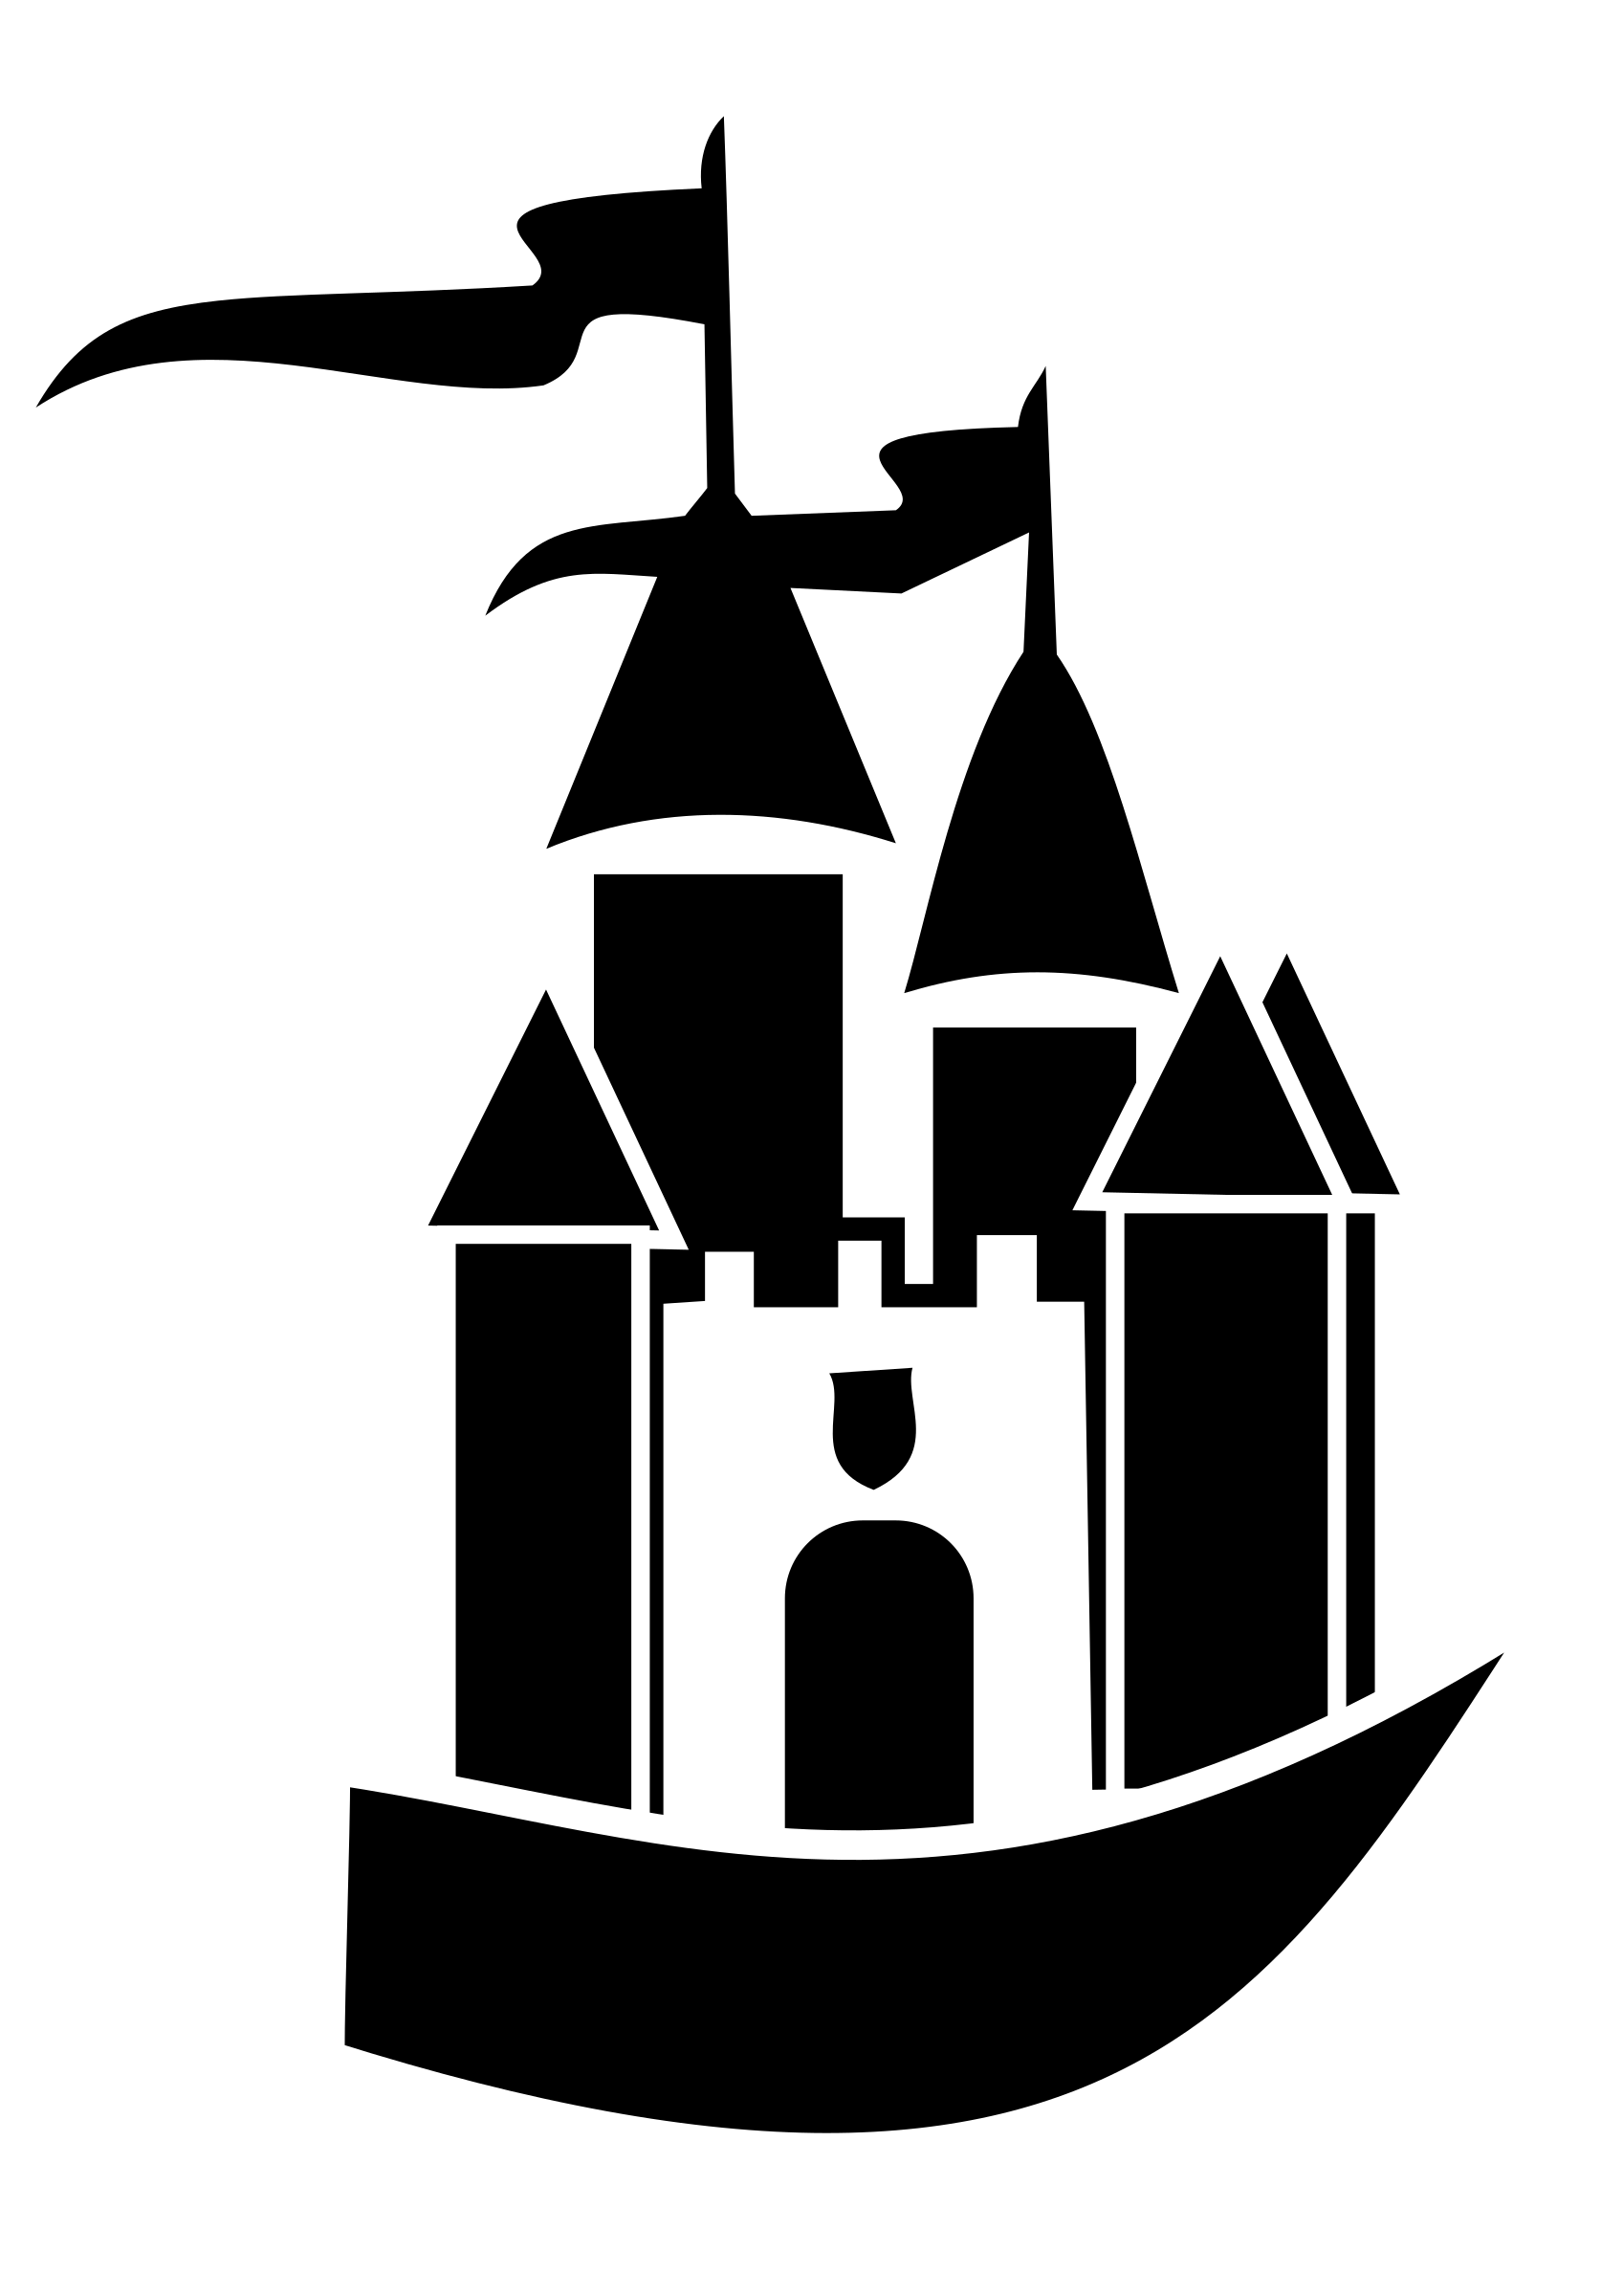 Castle of time vector clipart image